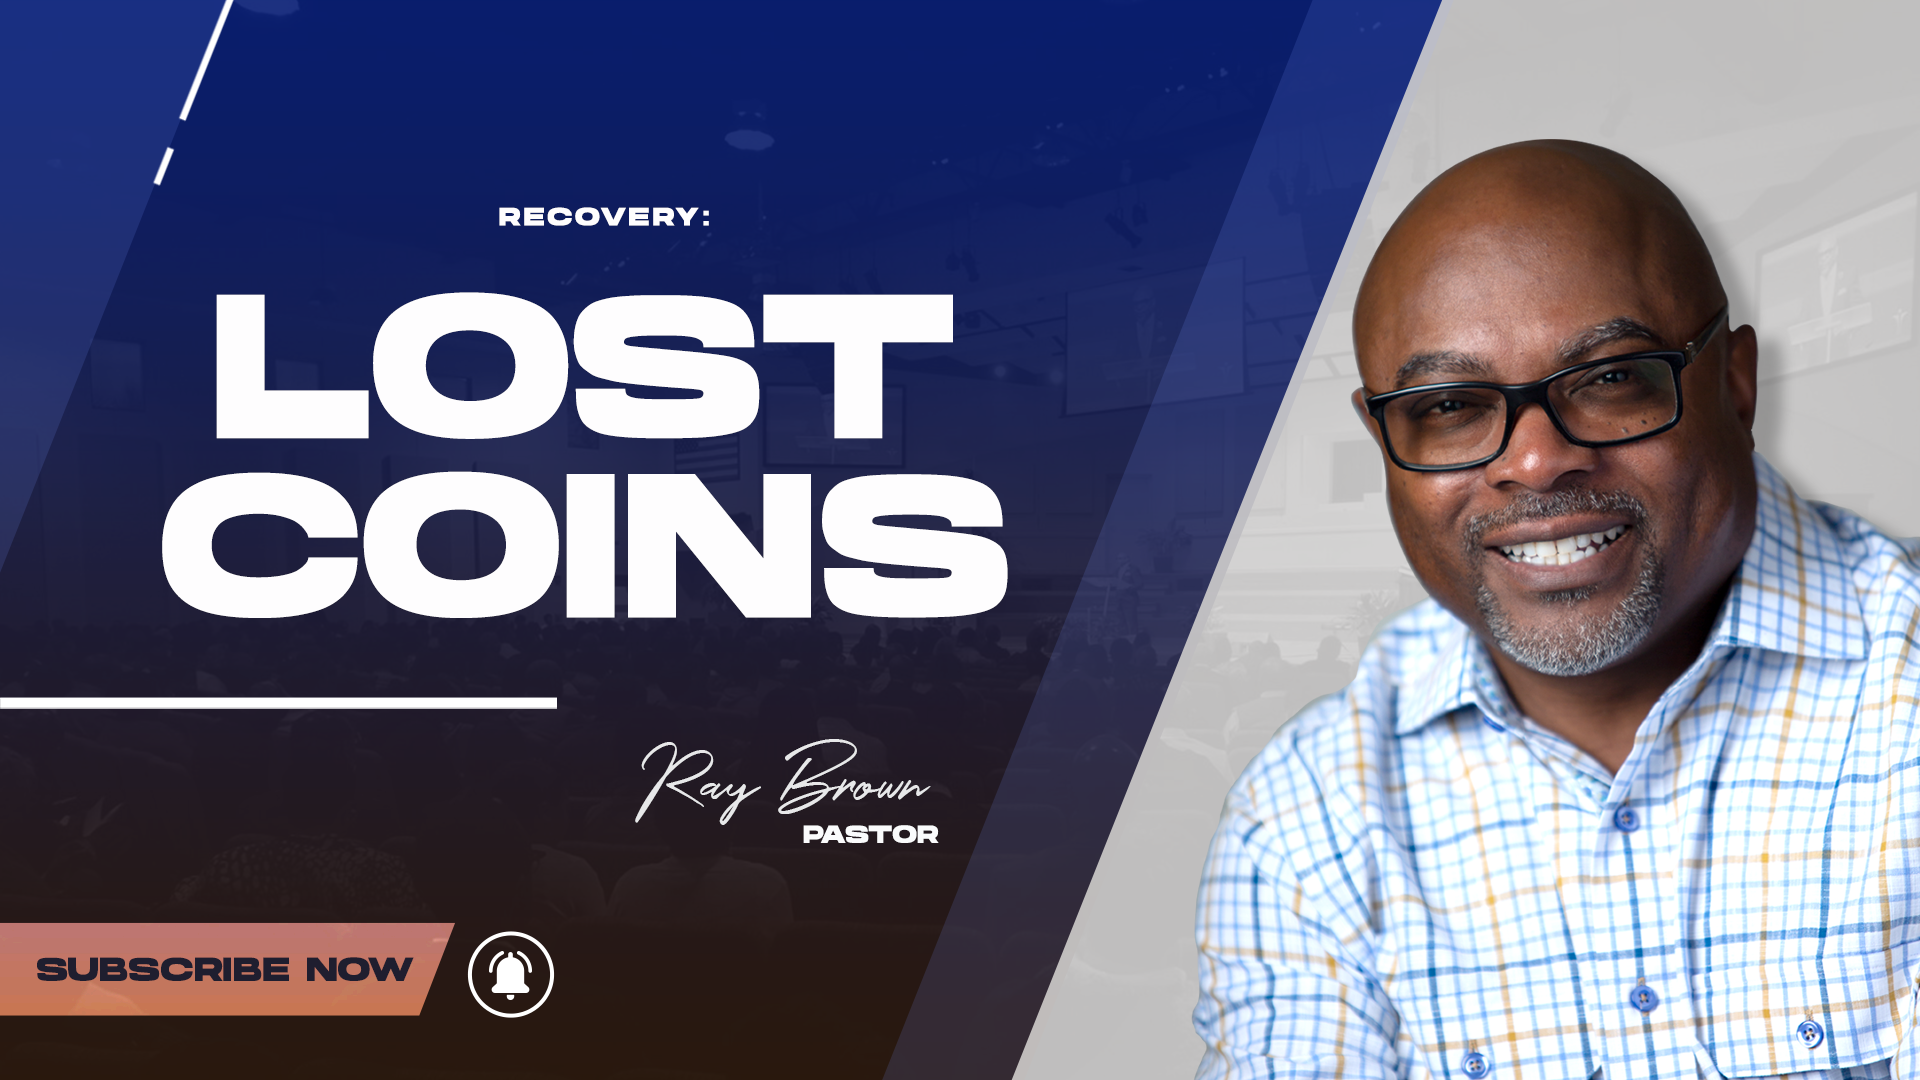 052321_recovery_lost coins